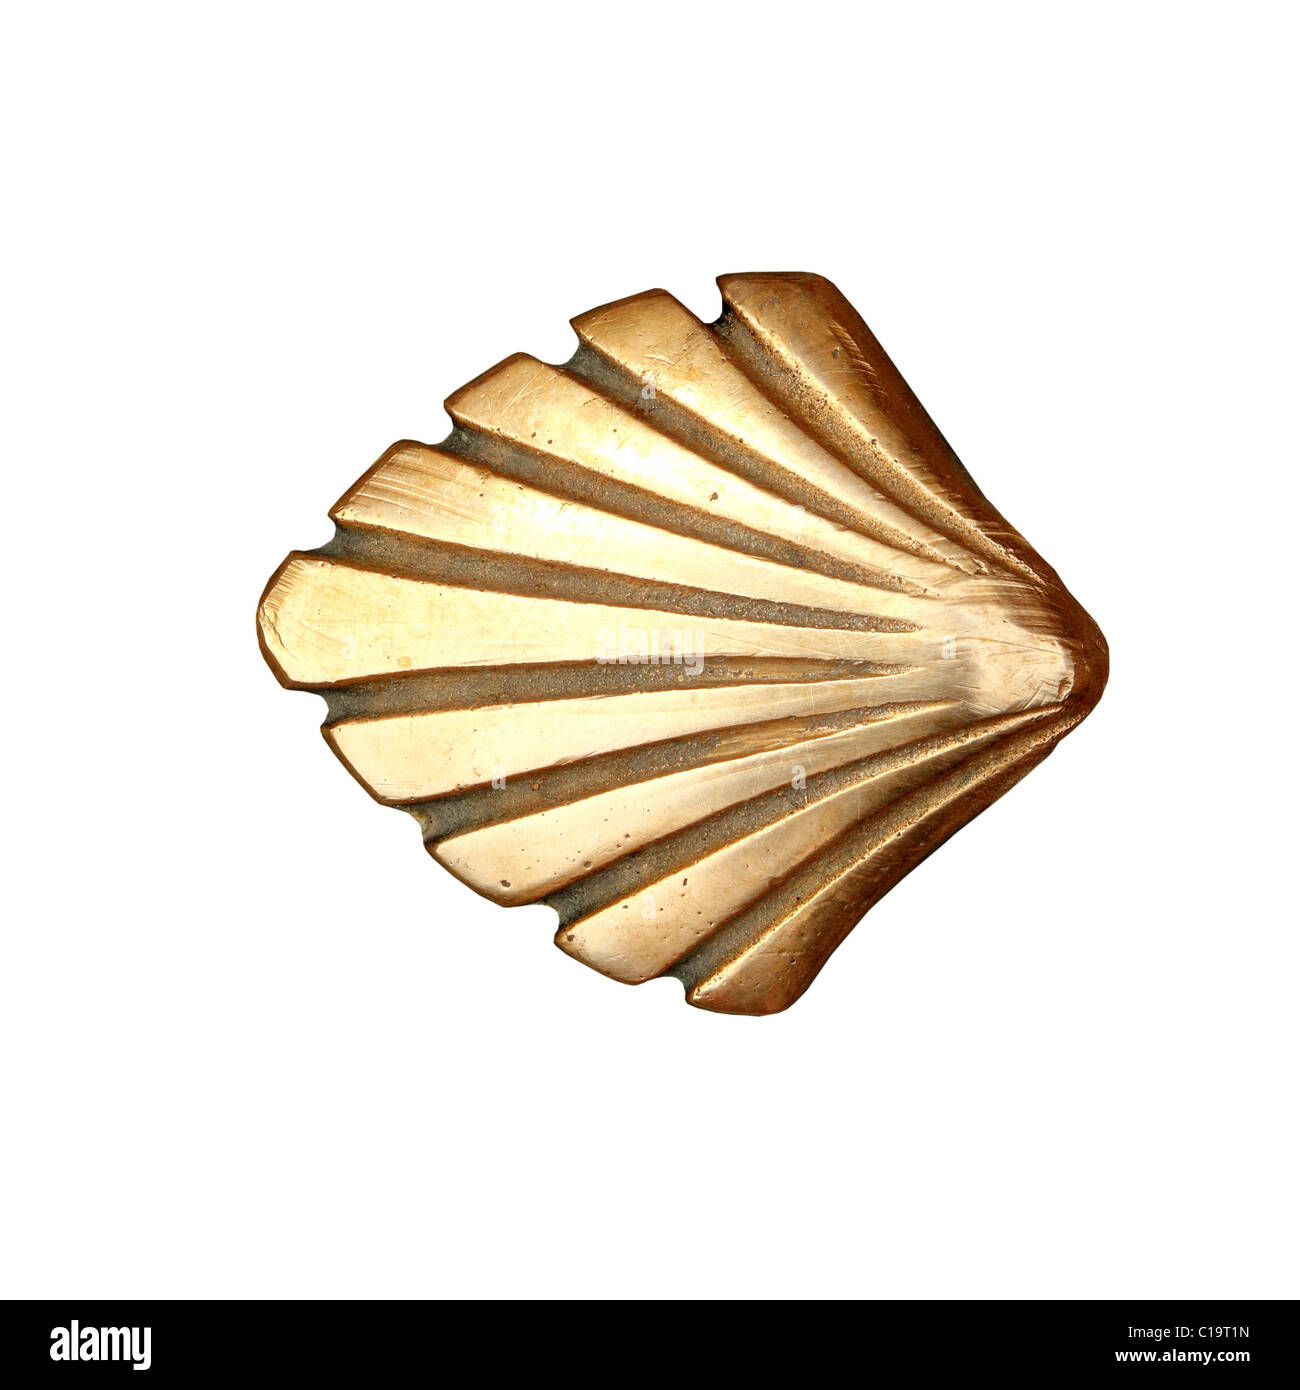 Saint James way shell golden metal on streets soil isolated on white - Stock Image